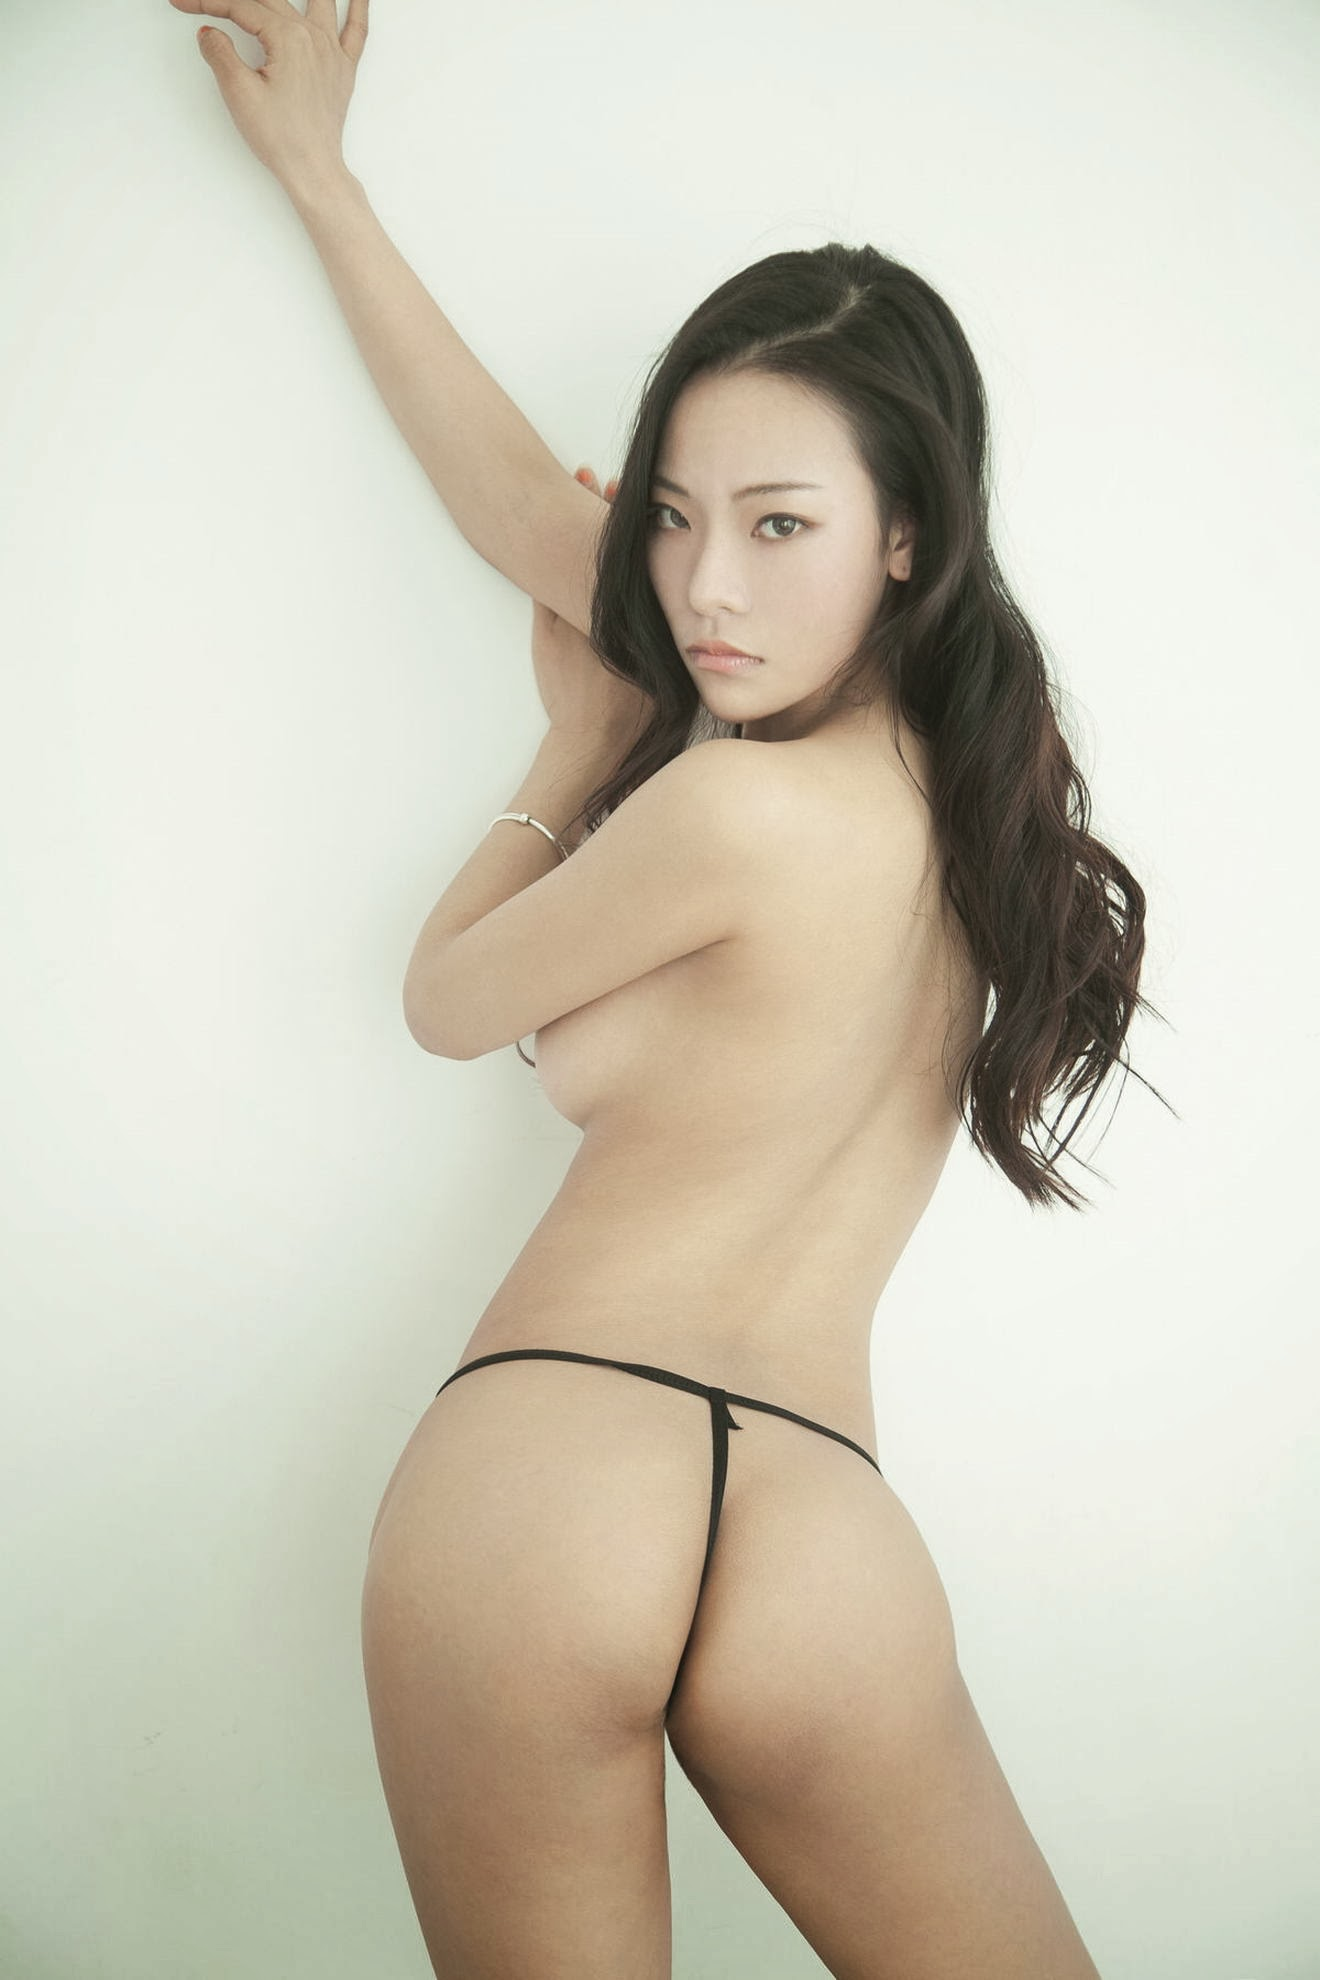 There all gravure japan girl found site